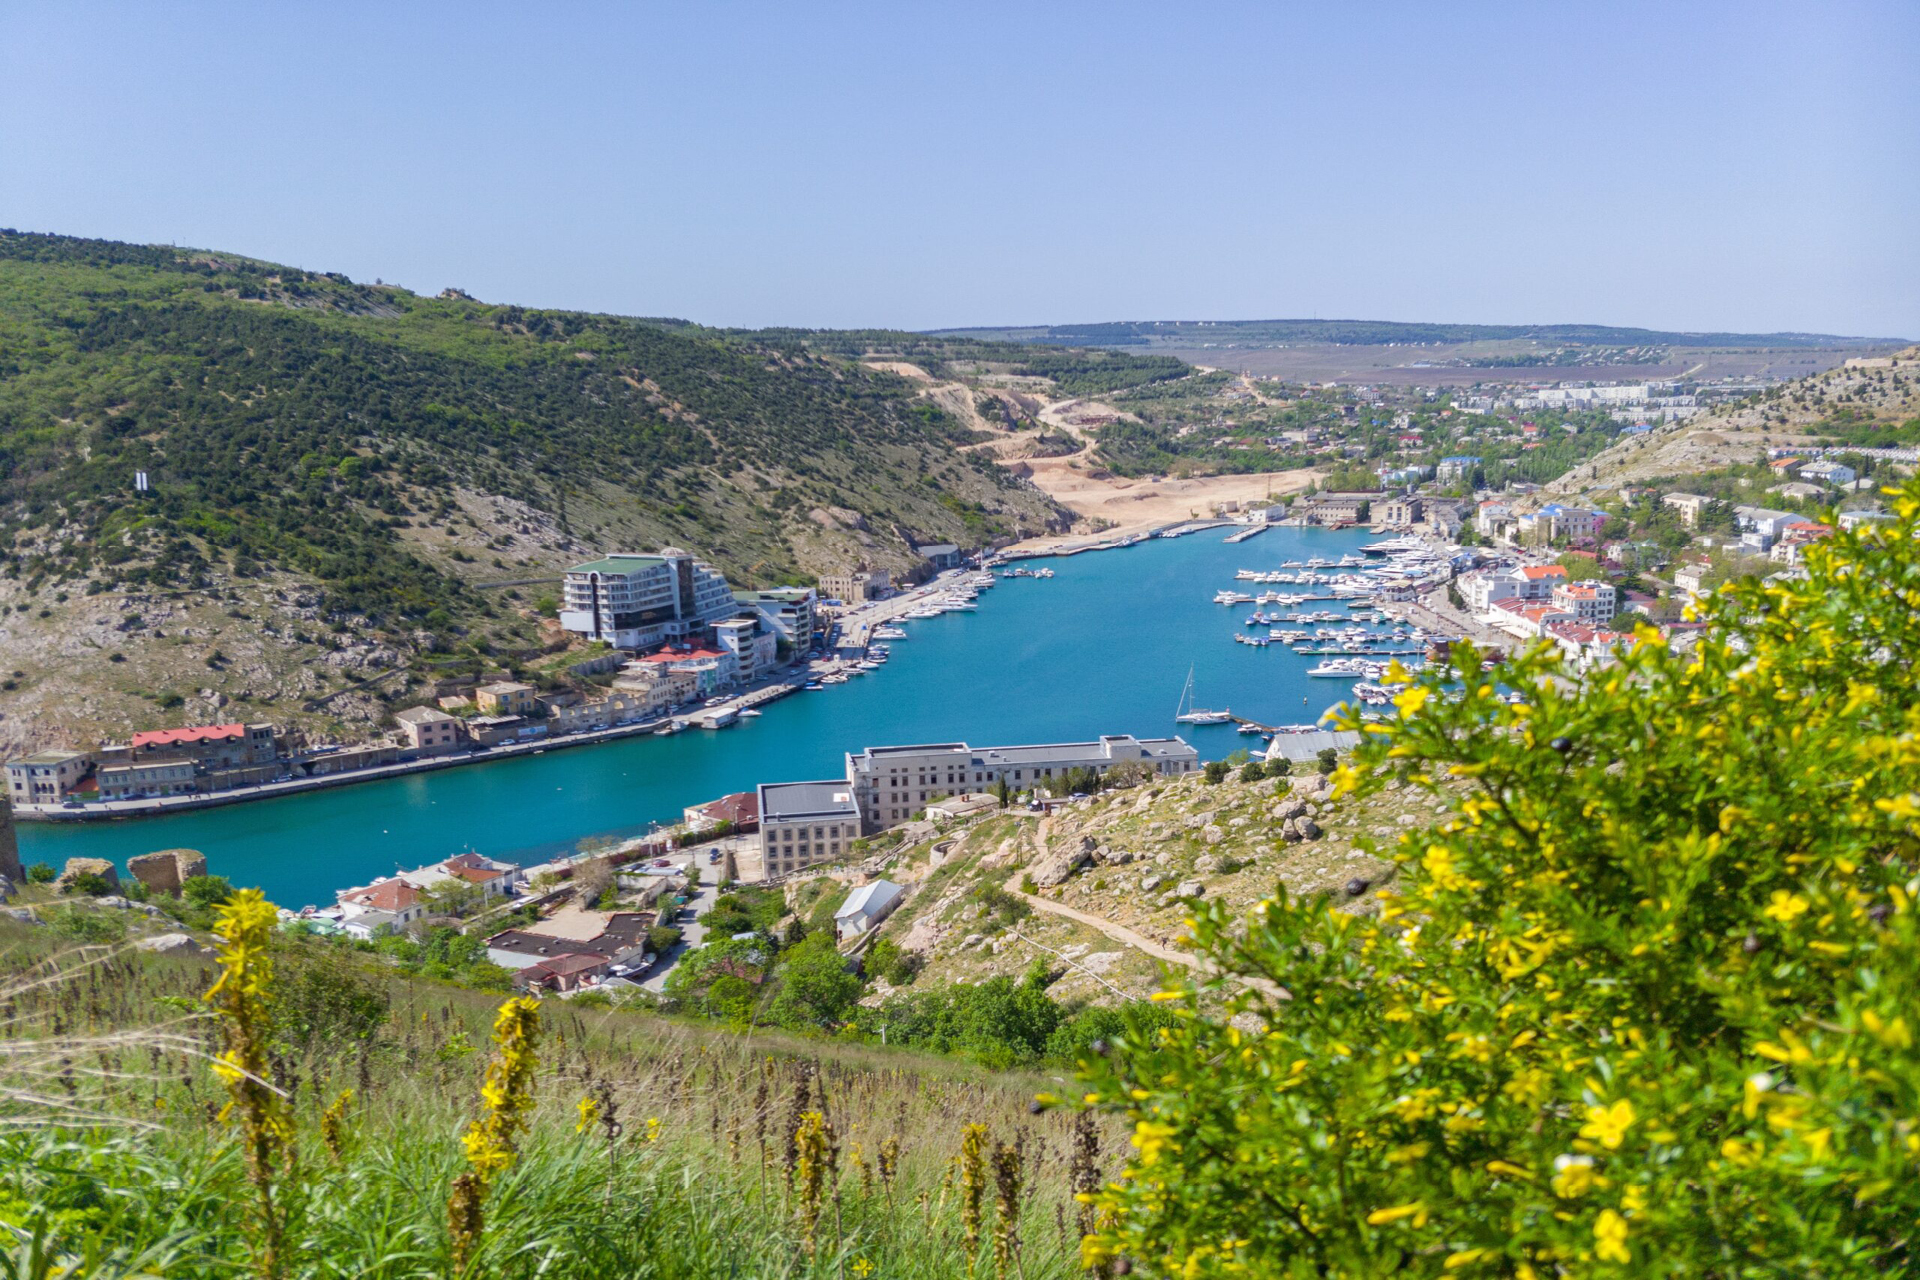 The view from the hill of a city on the shores of a bay, sea water of a beautiful blue color